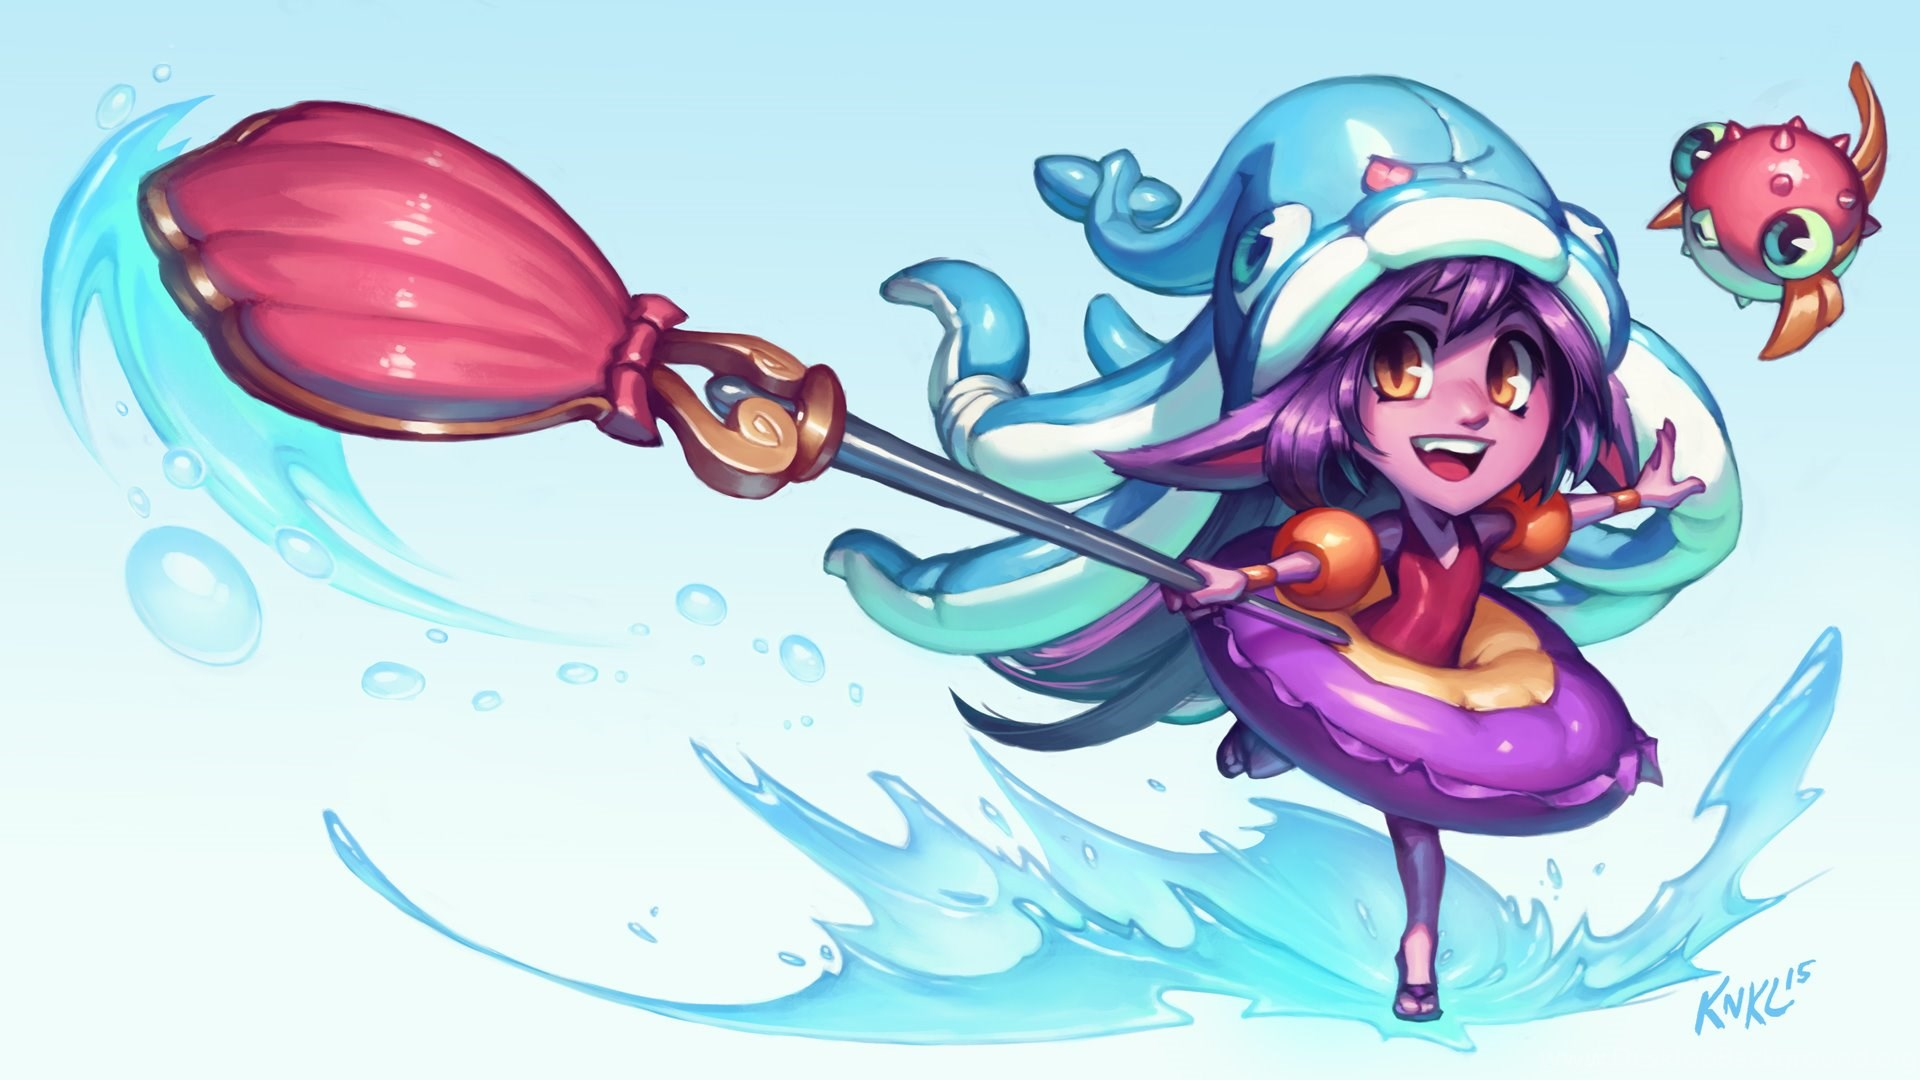 Pool Party Lulu League Of Legends With Video By Knkl On